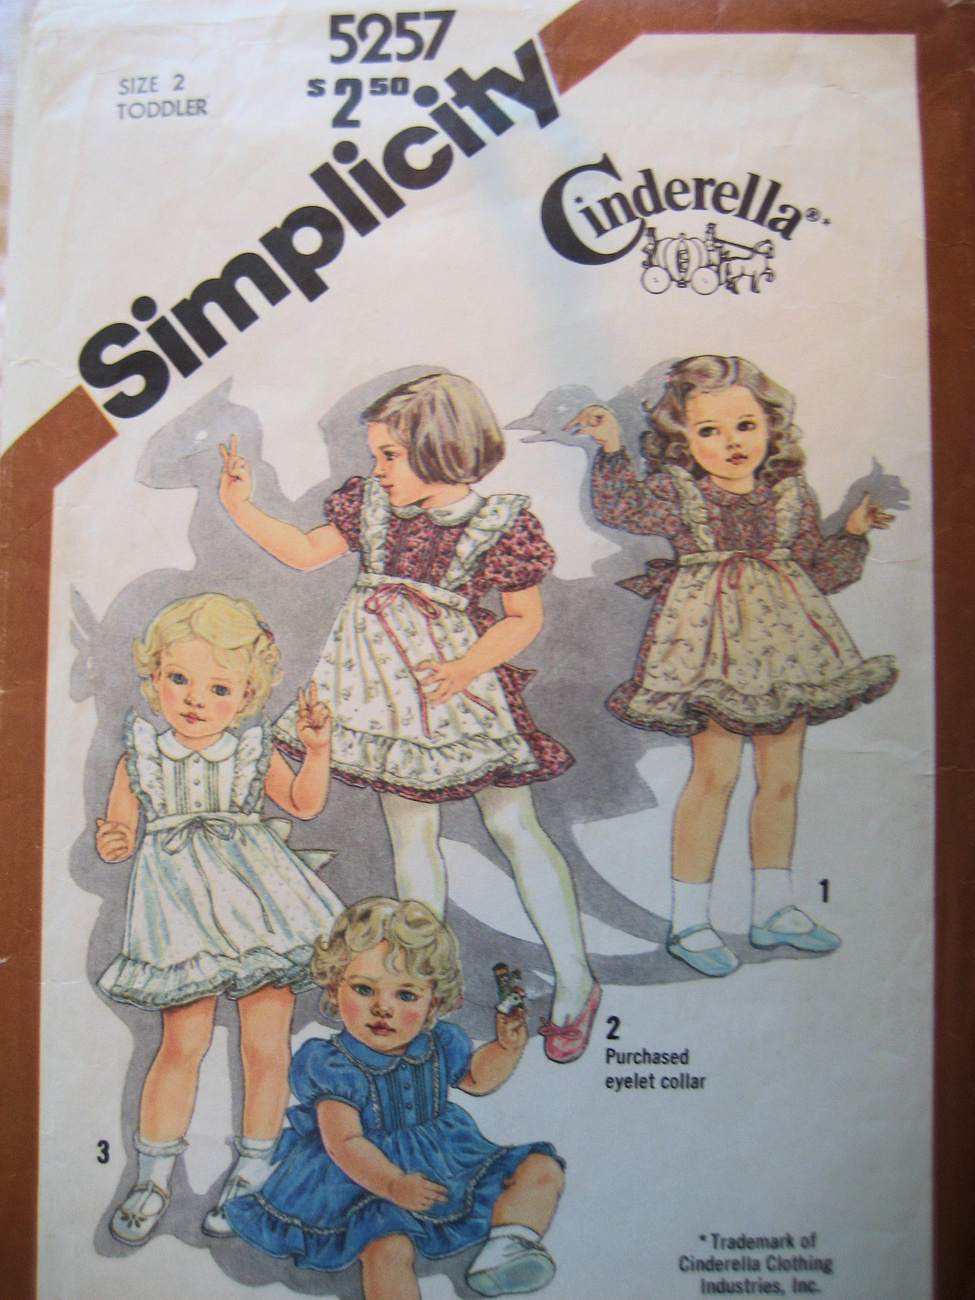 Simplicity 5257 Vintage Pattern Girls 2 Pinafore Dress  Simplicity New Look